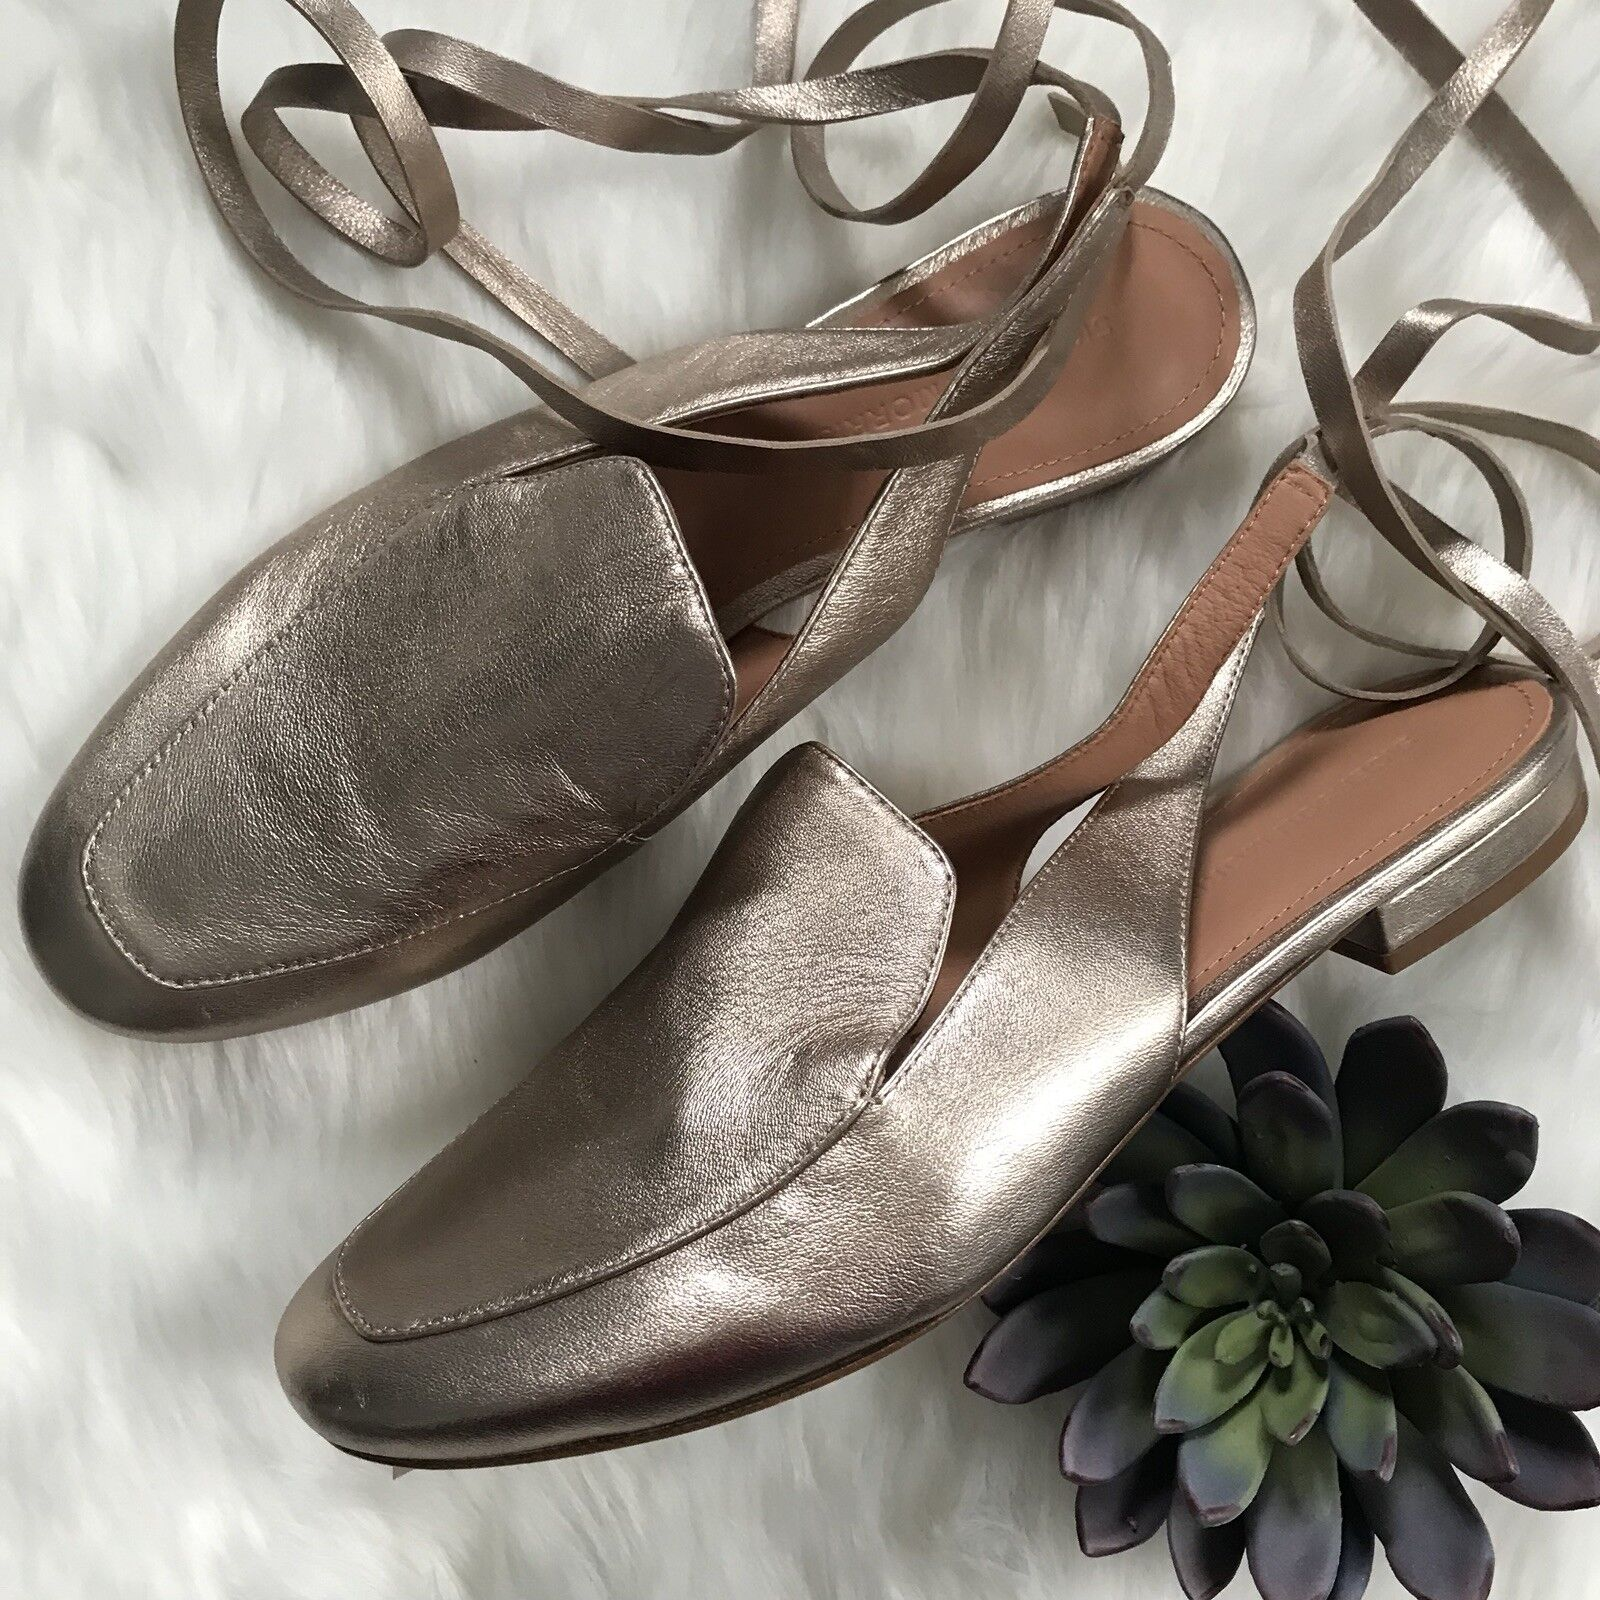 Sigerson Morrison Sz 7.5 Bena Backless Loafer Mule gold Leather Ankle Wrap Flats